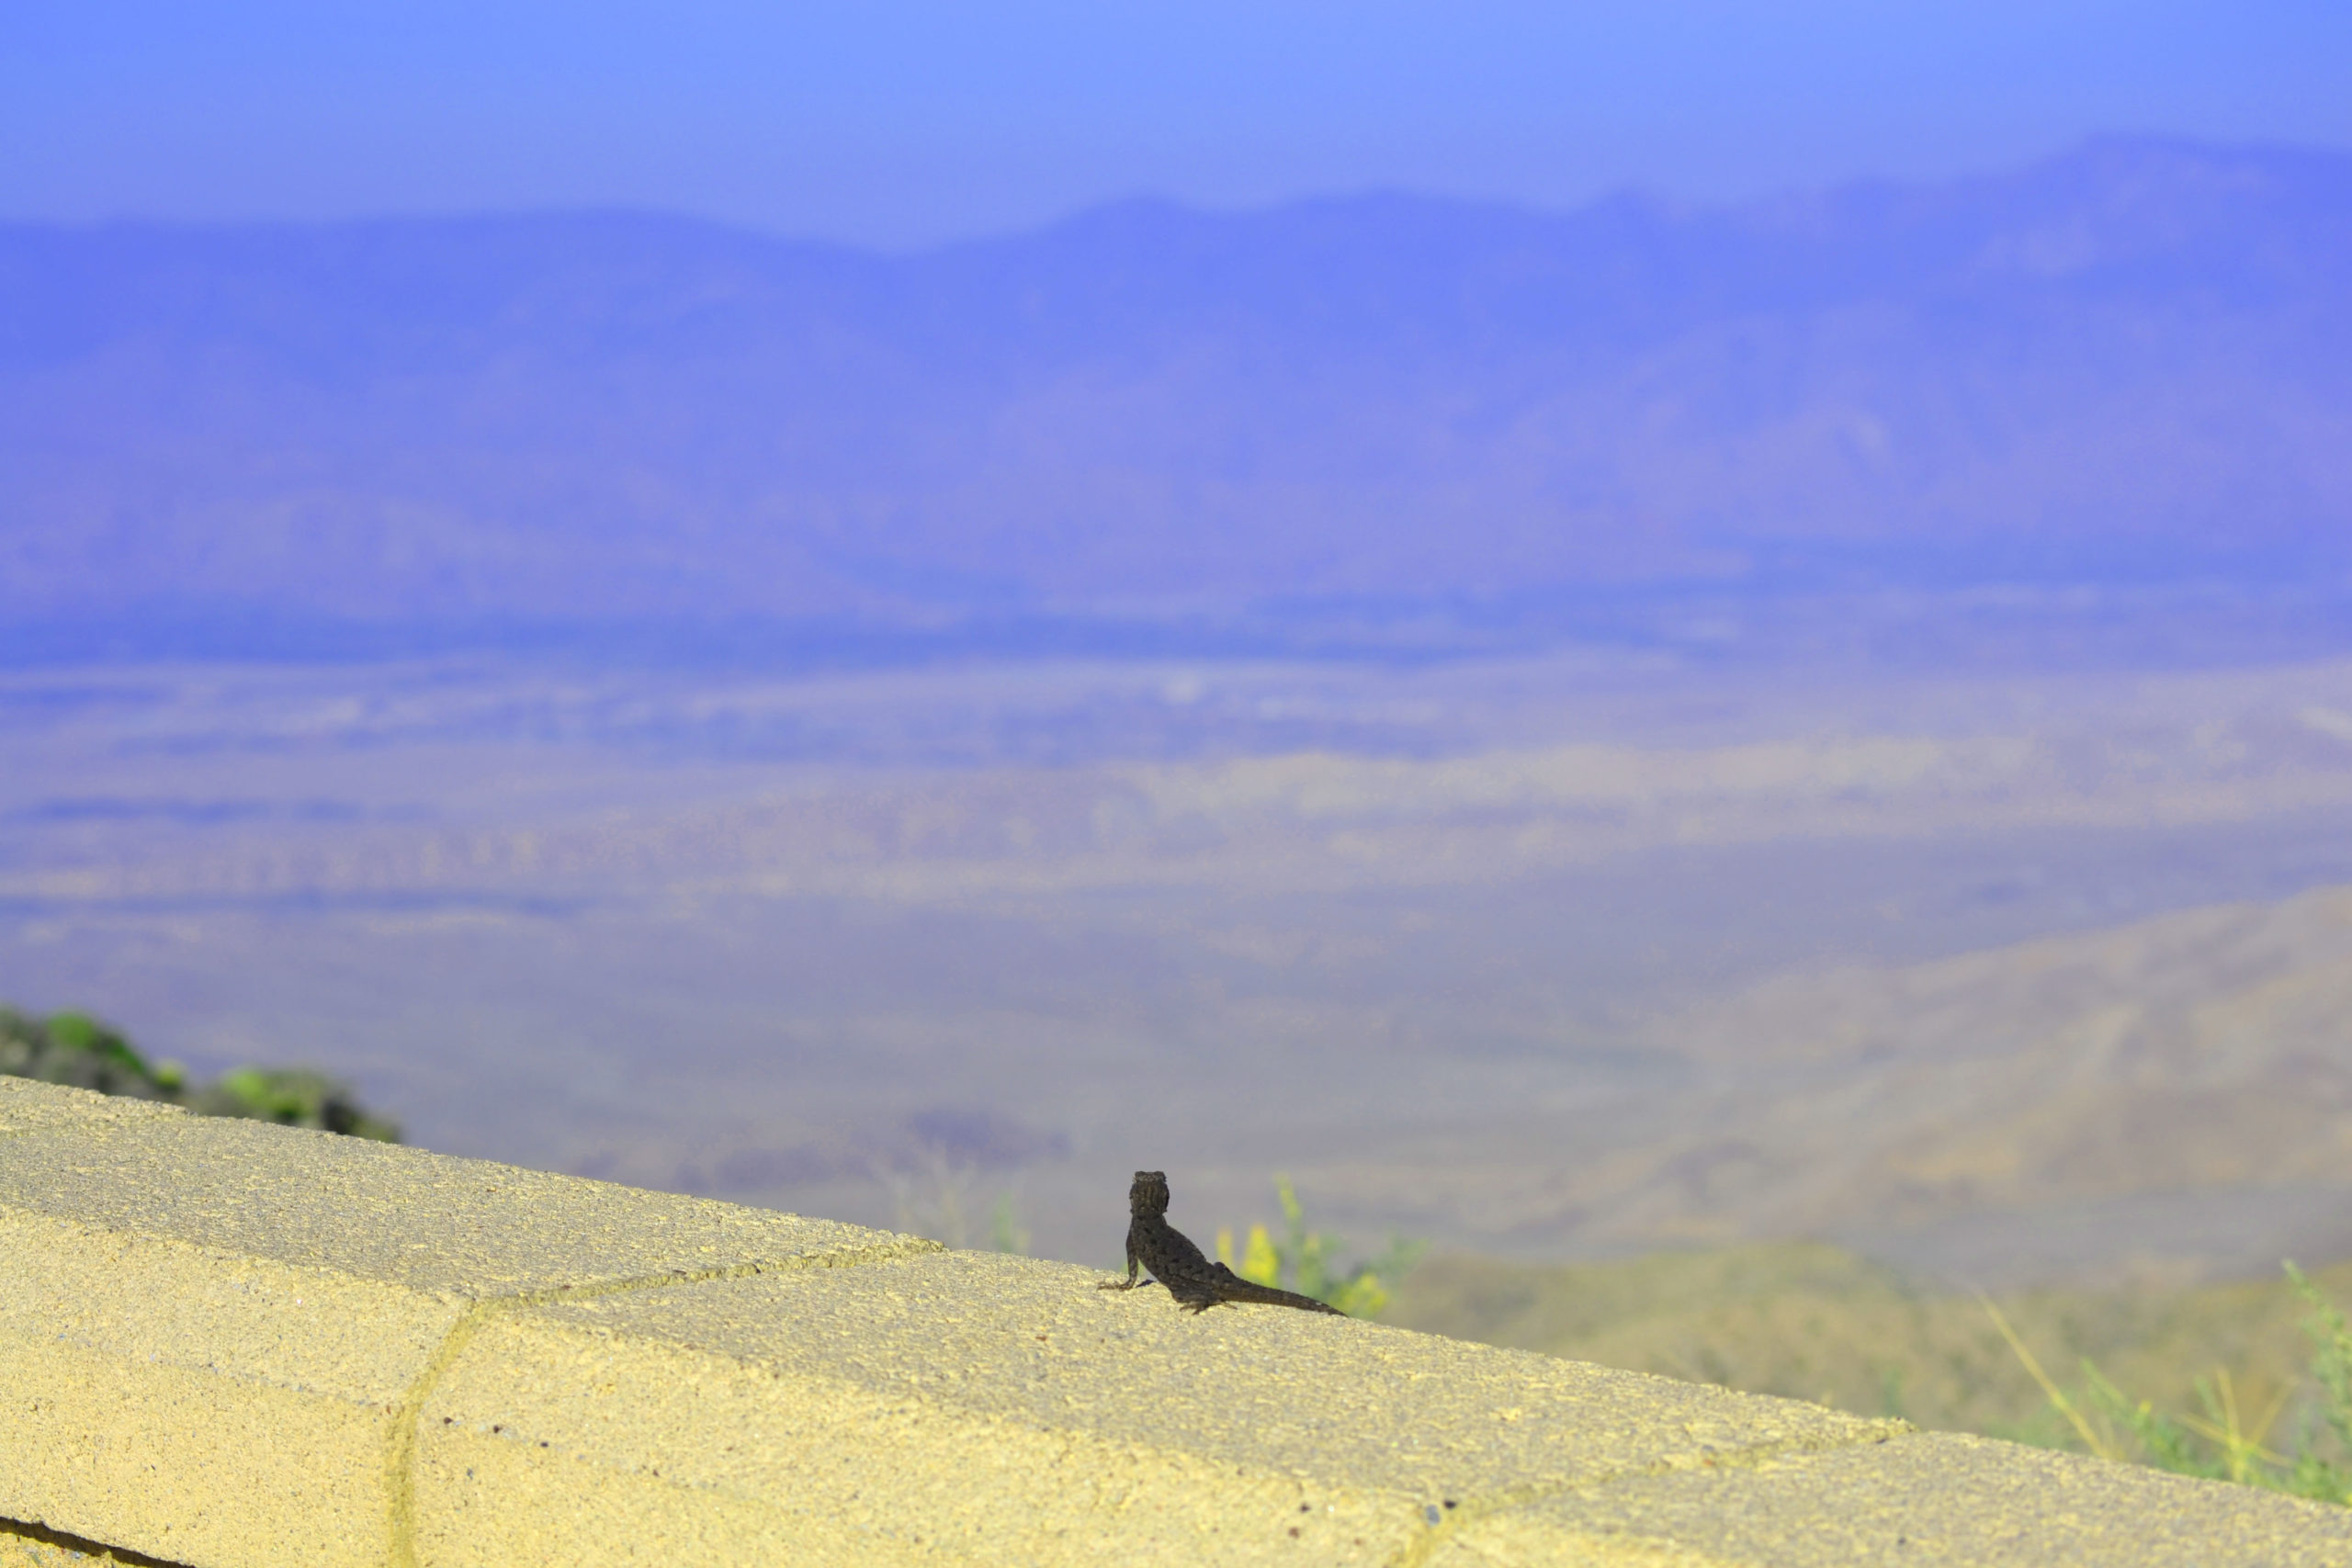 joshua-tree-national-park-adventure-tour-hiking-climbing-camping-black-lizard-looking-out-from-keys-view